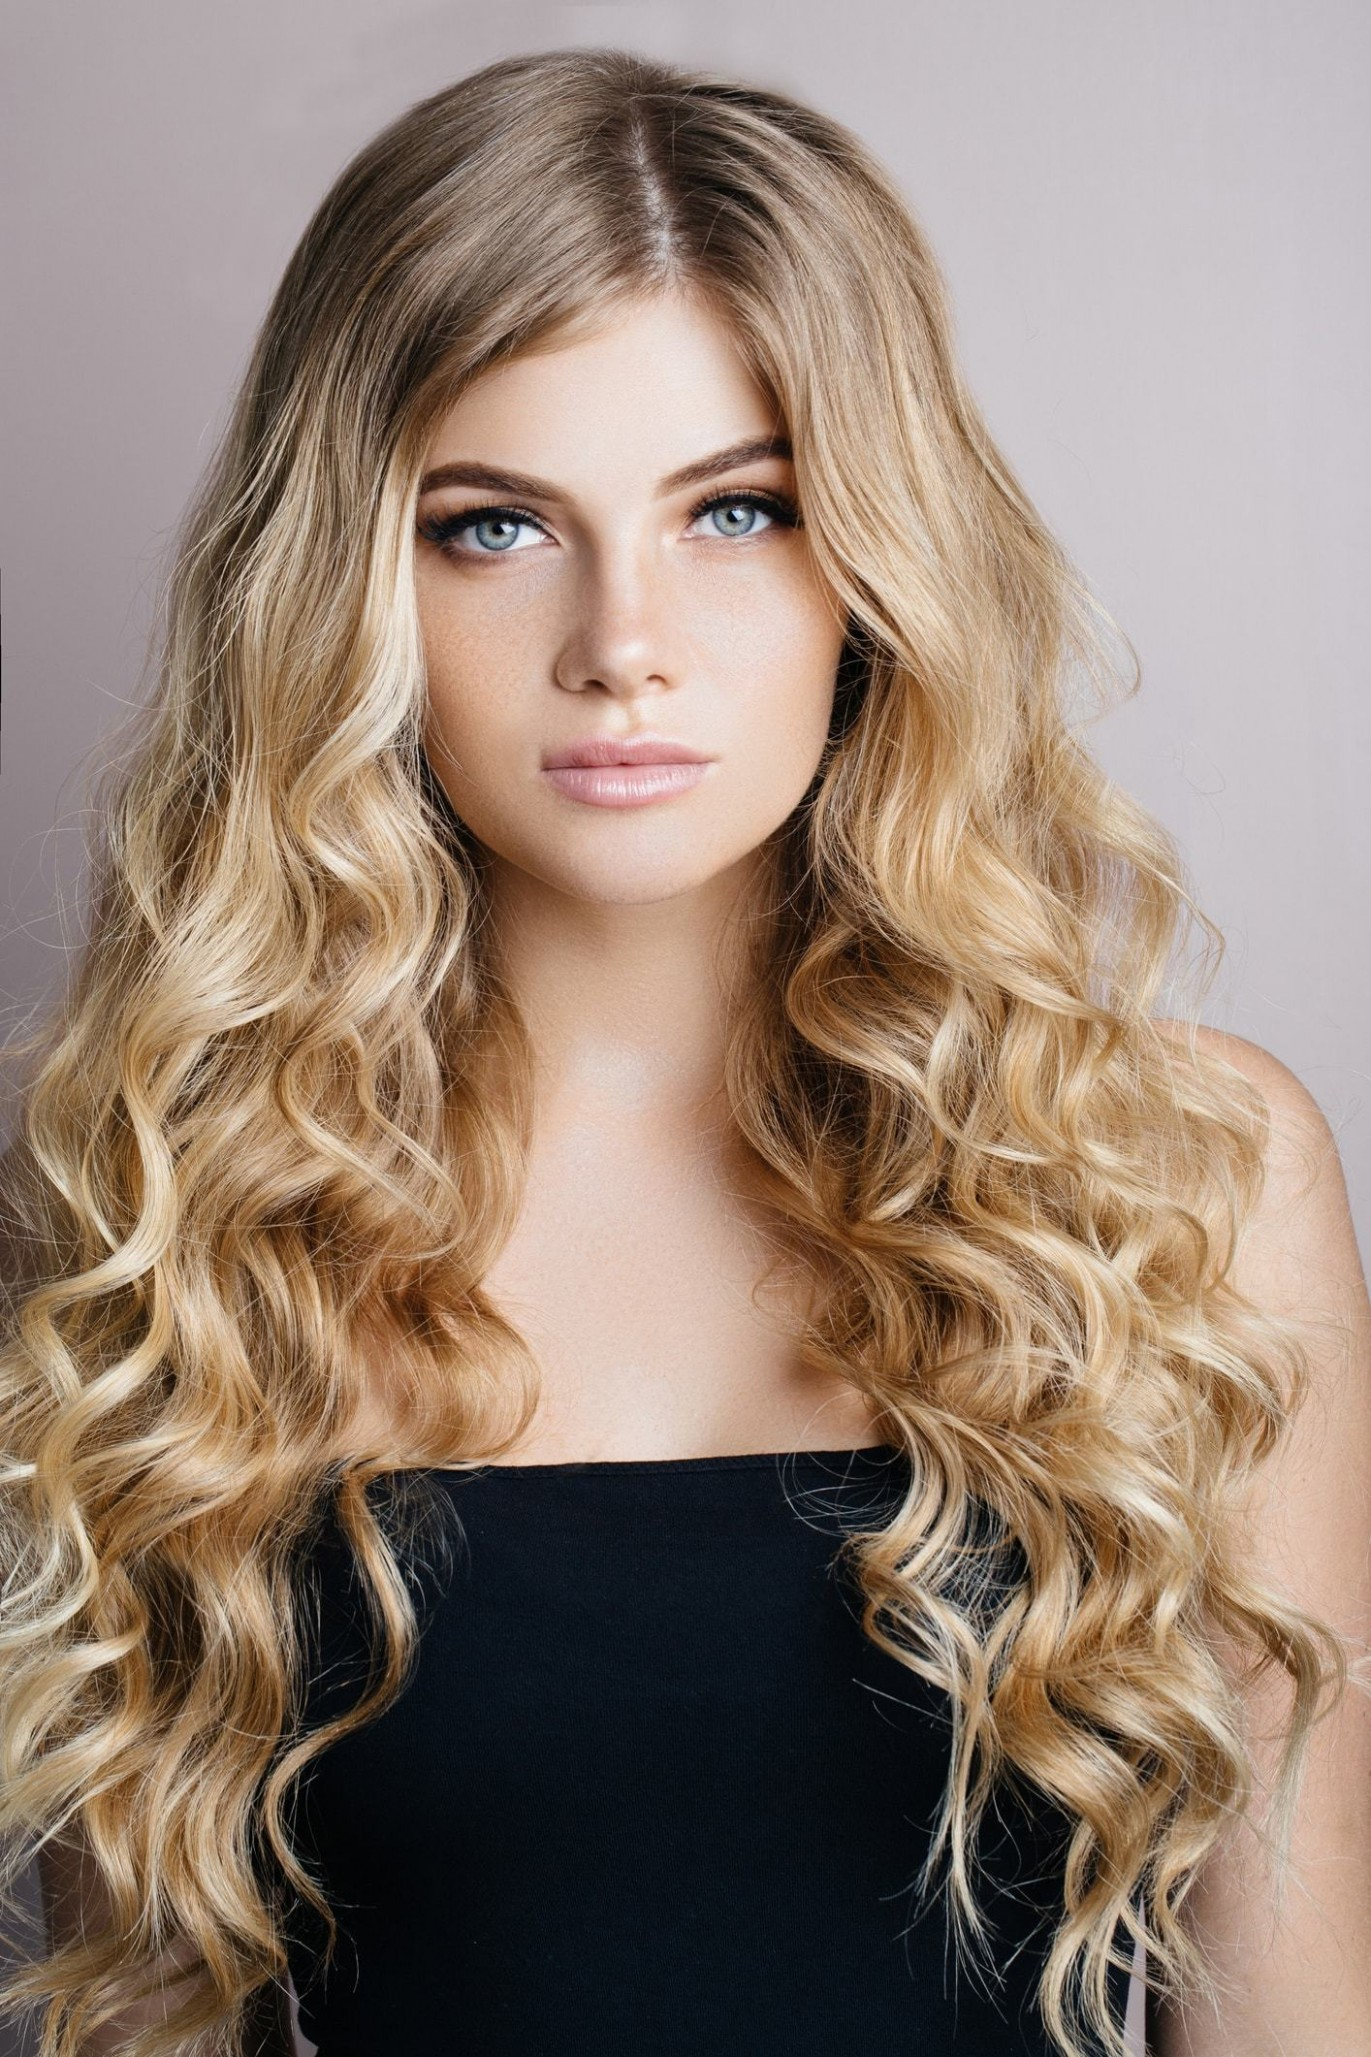 Blonde Curly Hair Looks For 9 All Things Hair US Blonde Hair Curly